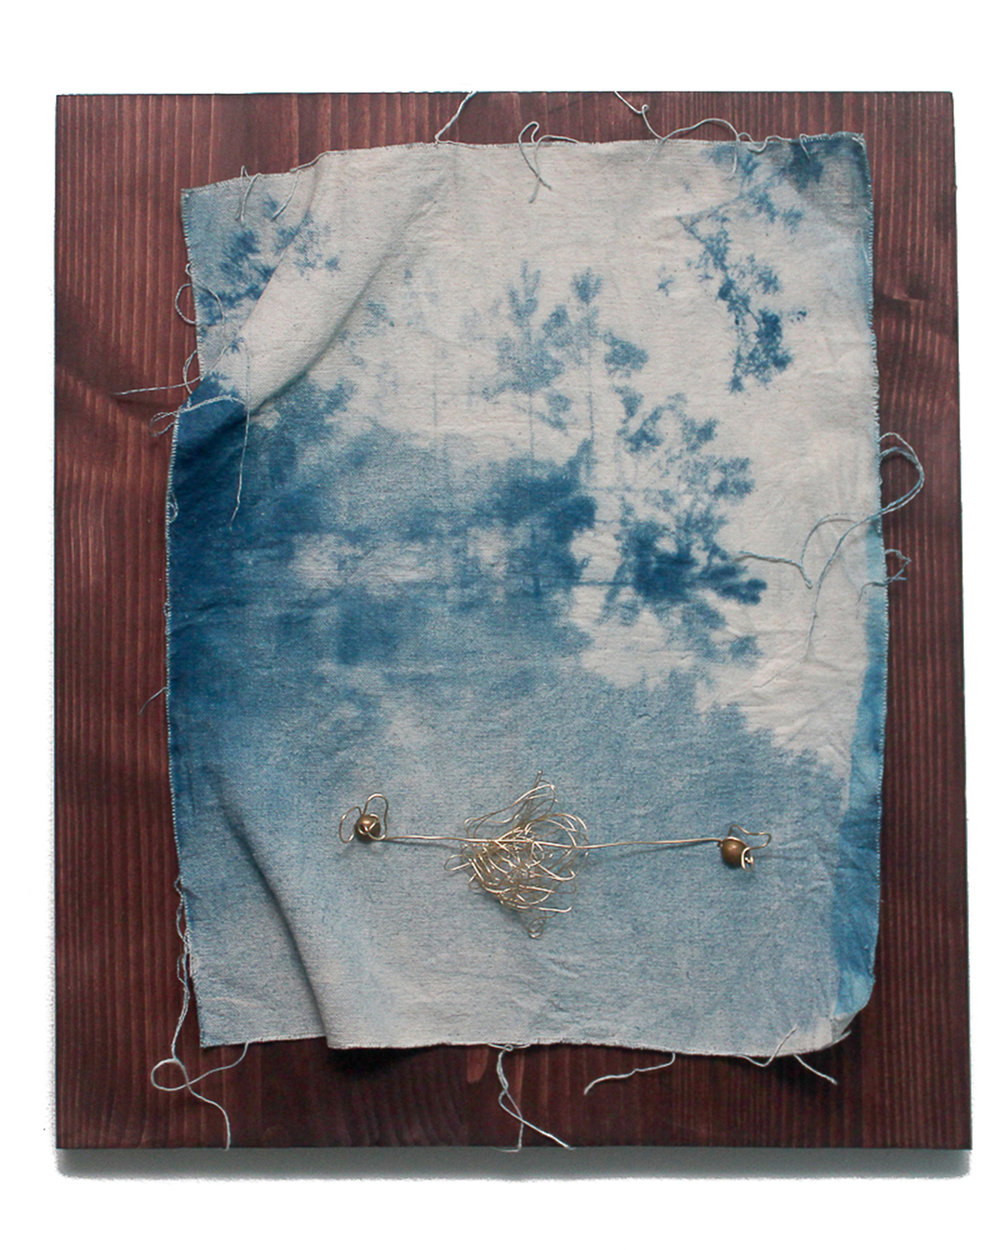 Jeremiah Morris - _Forced Perspectives_ - 16x20 - Cyanotype photographic print on canvas, brass tacks, brass wire, wood - 2016 - $650.jpg